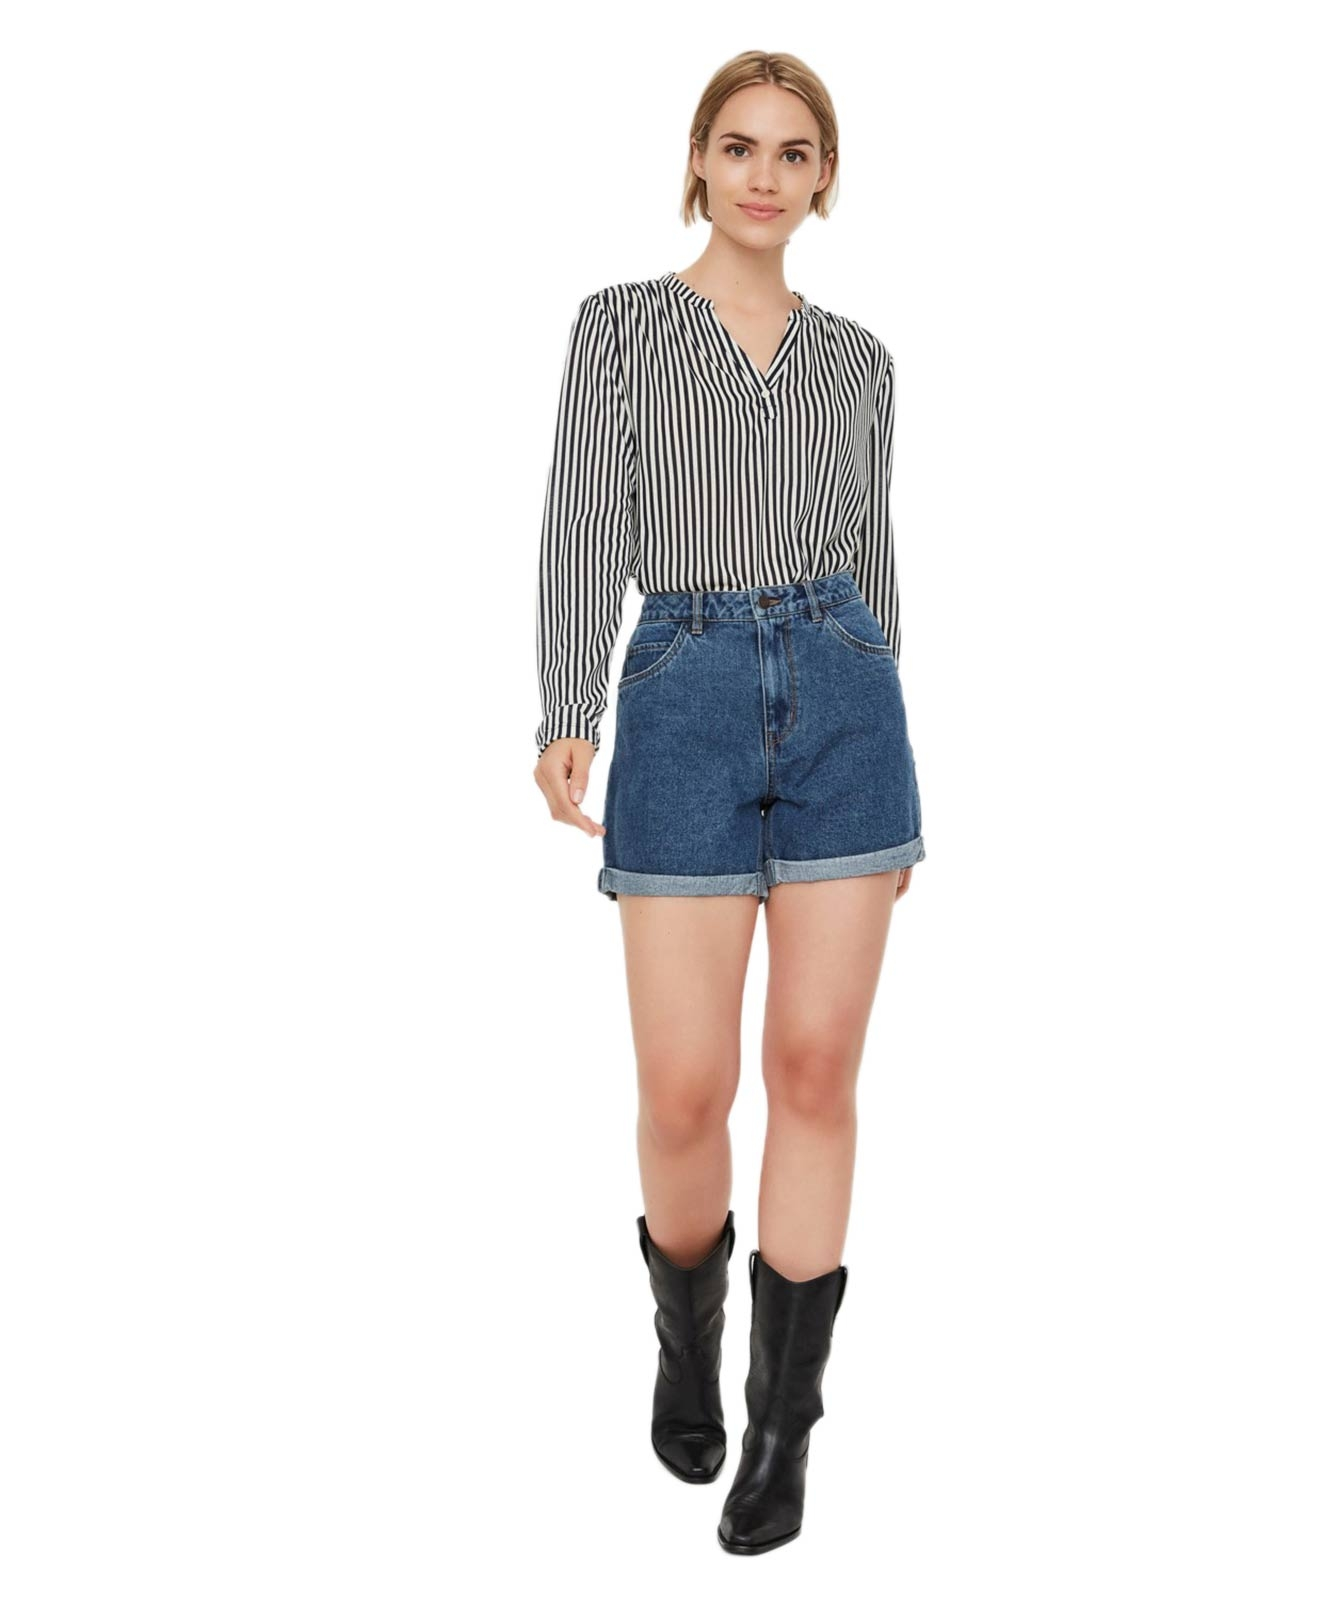 Hosen - Vero Moda Jeans Shorts Ninetten in Medium Blue Denim  - Onlineshop Jeans Meile